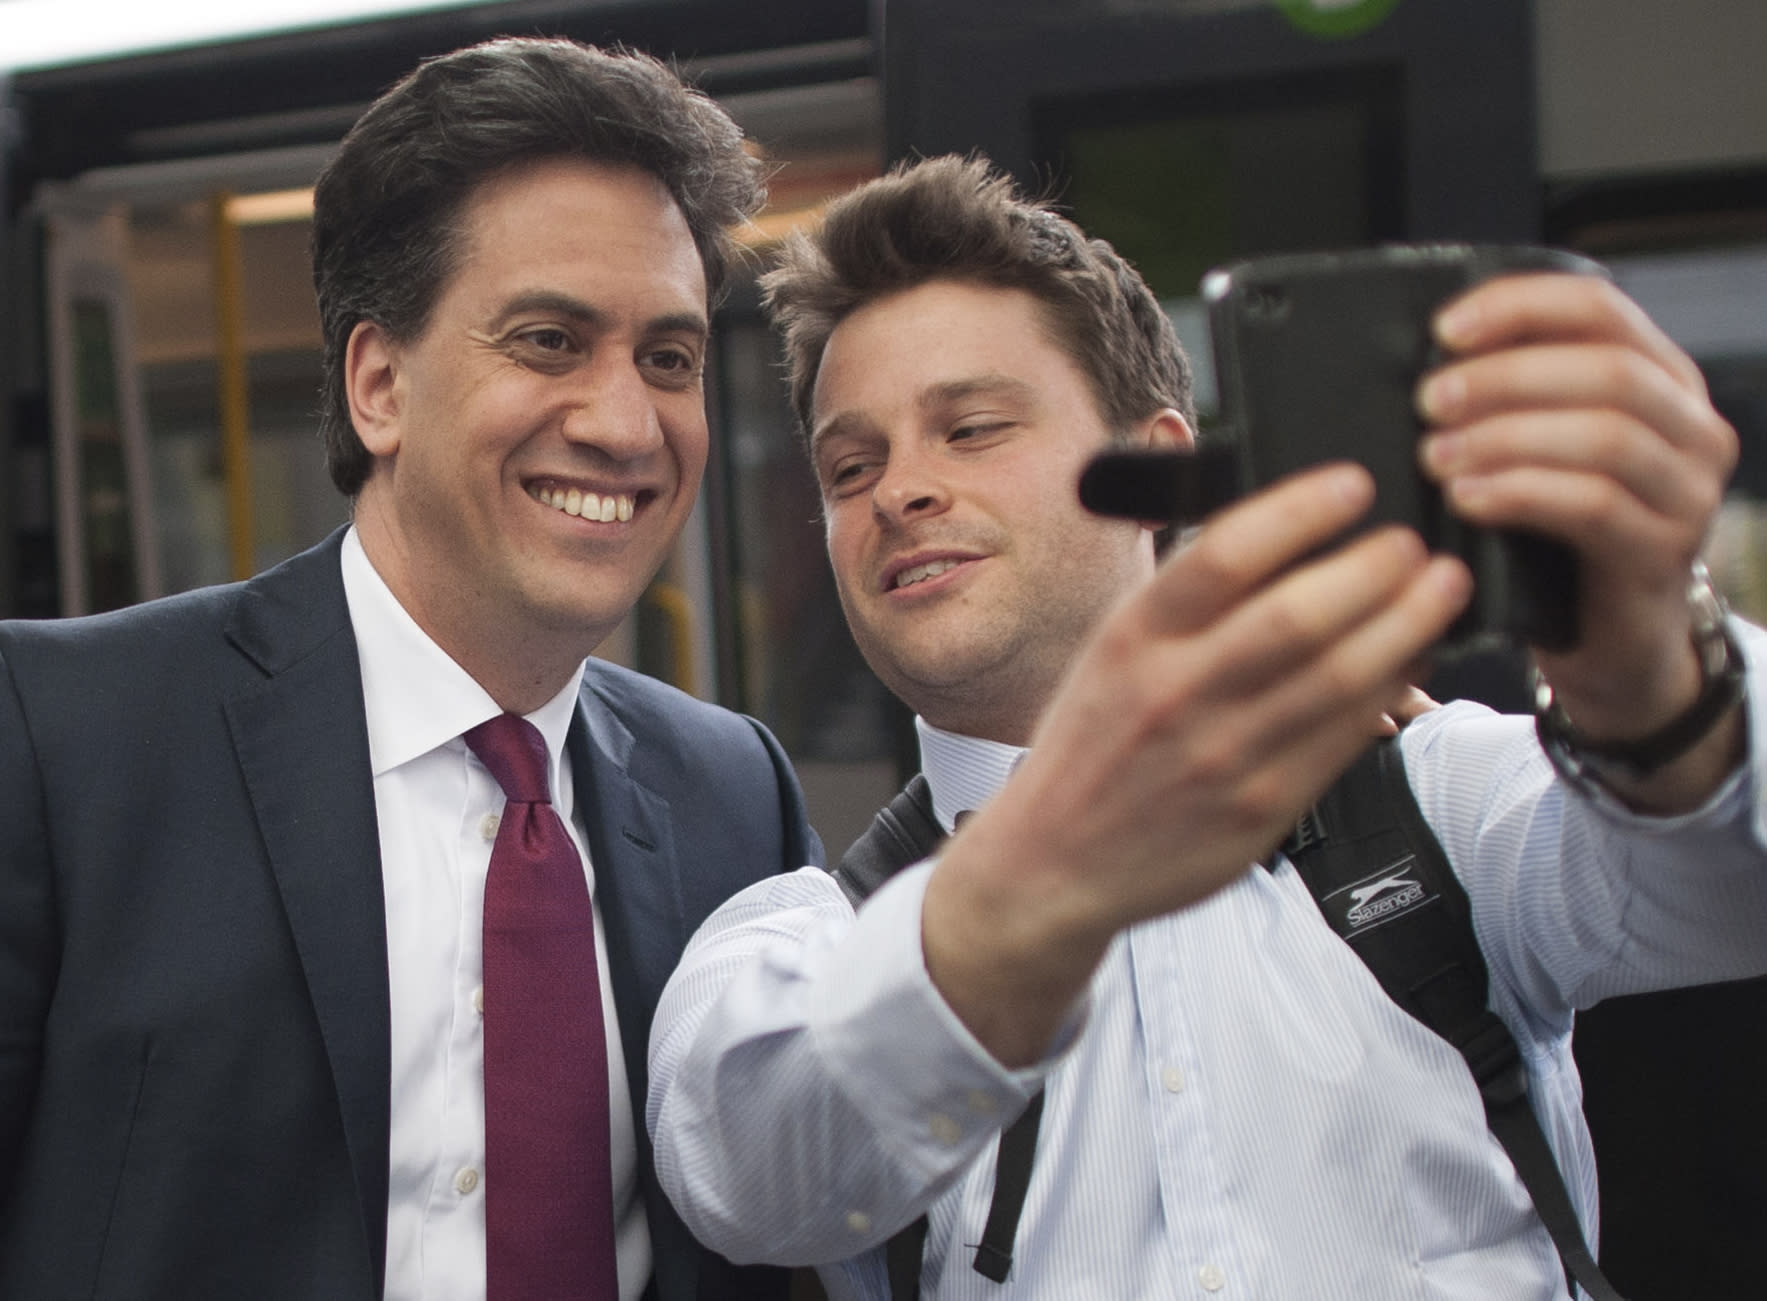 Social media a key battleground in Britain's election